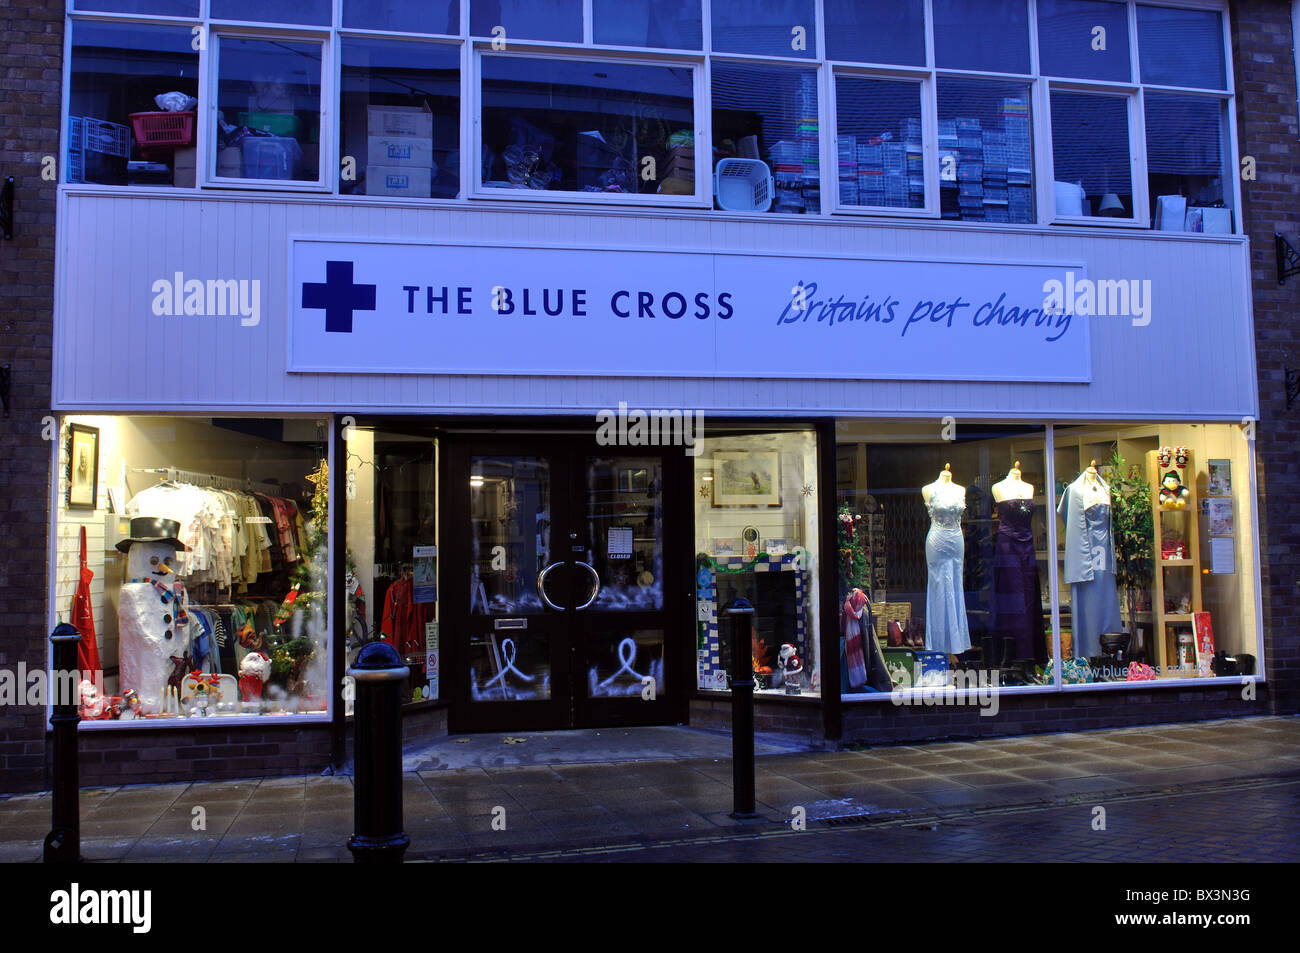 The Blue Cross charity shop, Warwick, UK - Stock Image